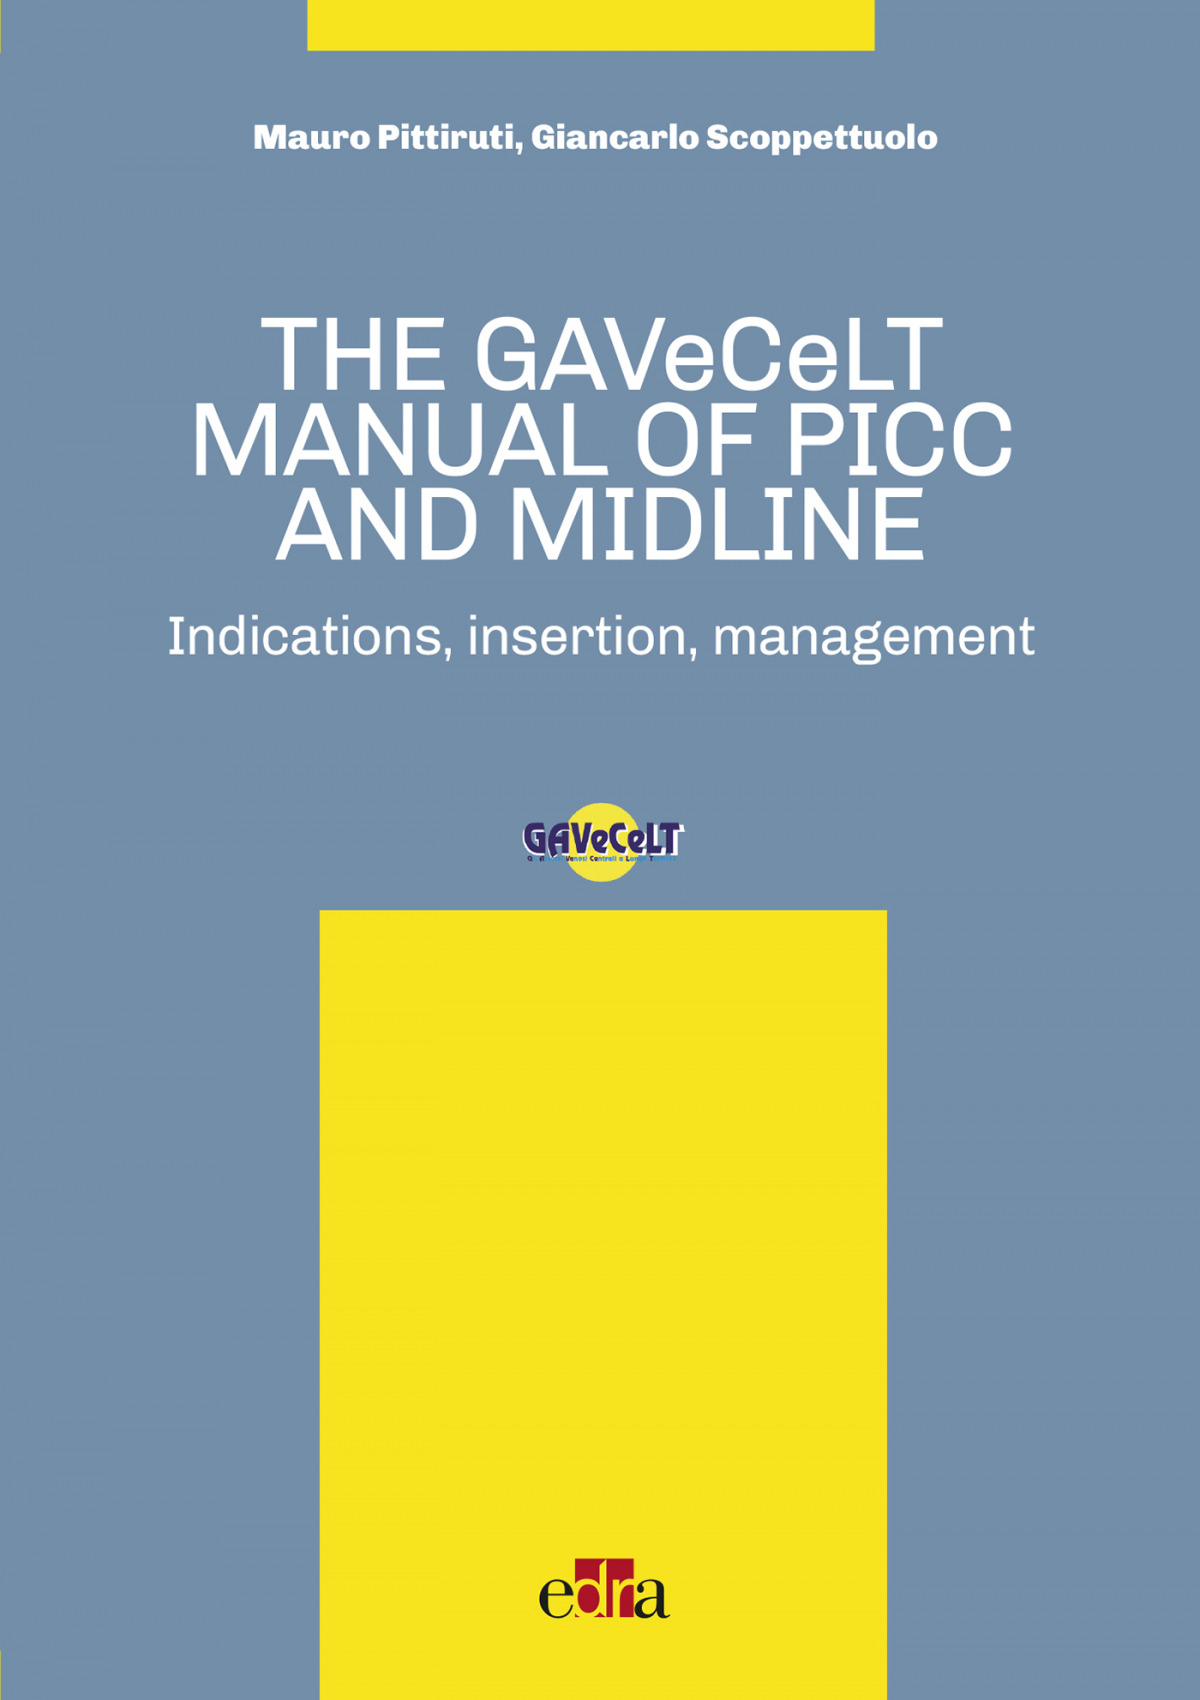 GAVECELT MANUAL OF PICC AND MIDLINE,THE